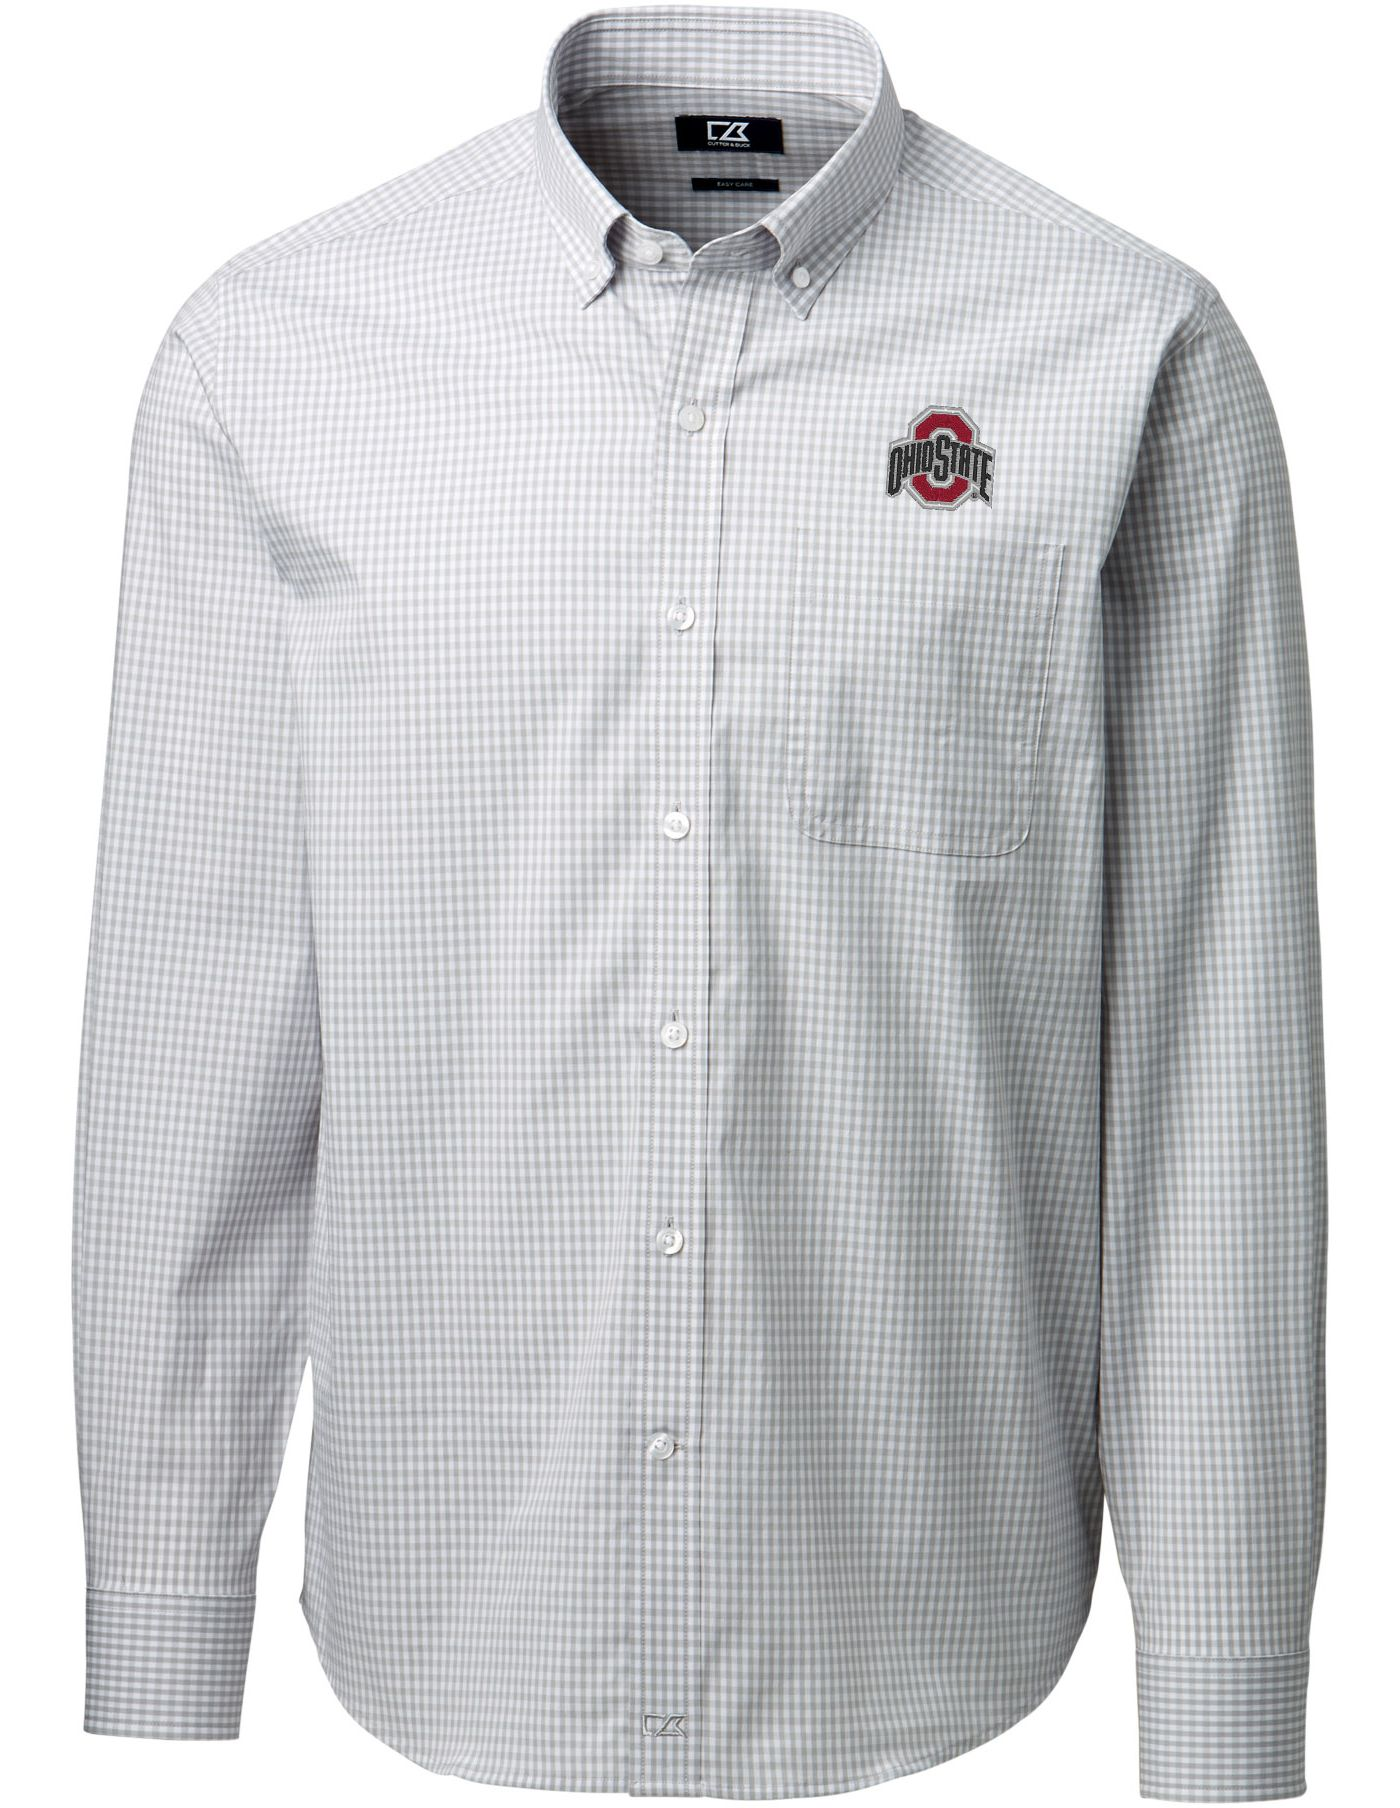 Cutter & Buck Men's Ohio State Buckeyes Gray Anchor Gingham Long Sleeve Shirt